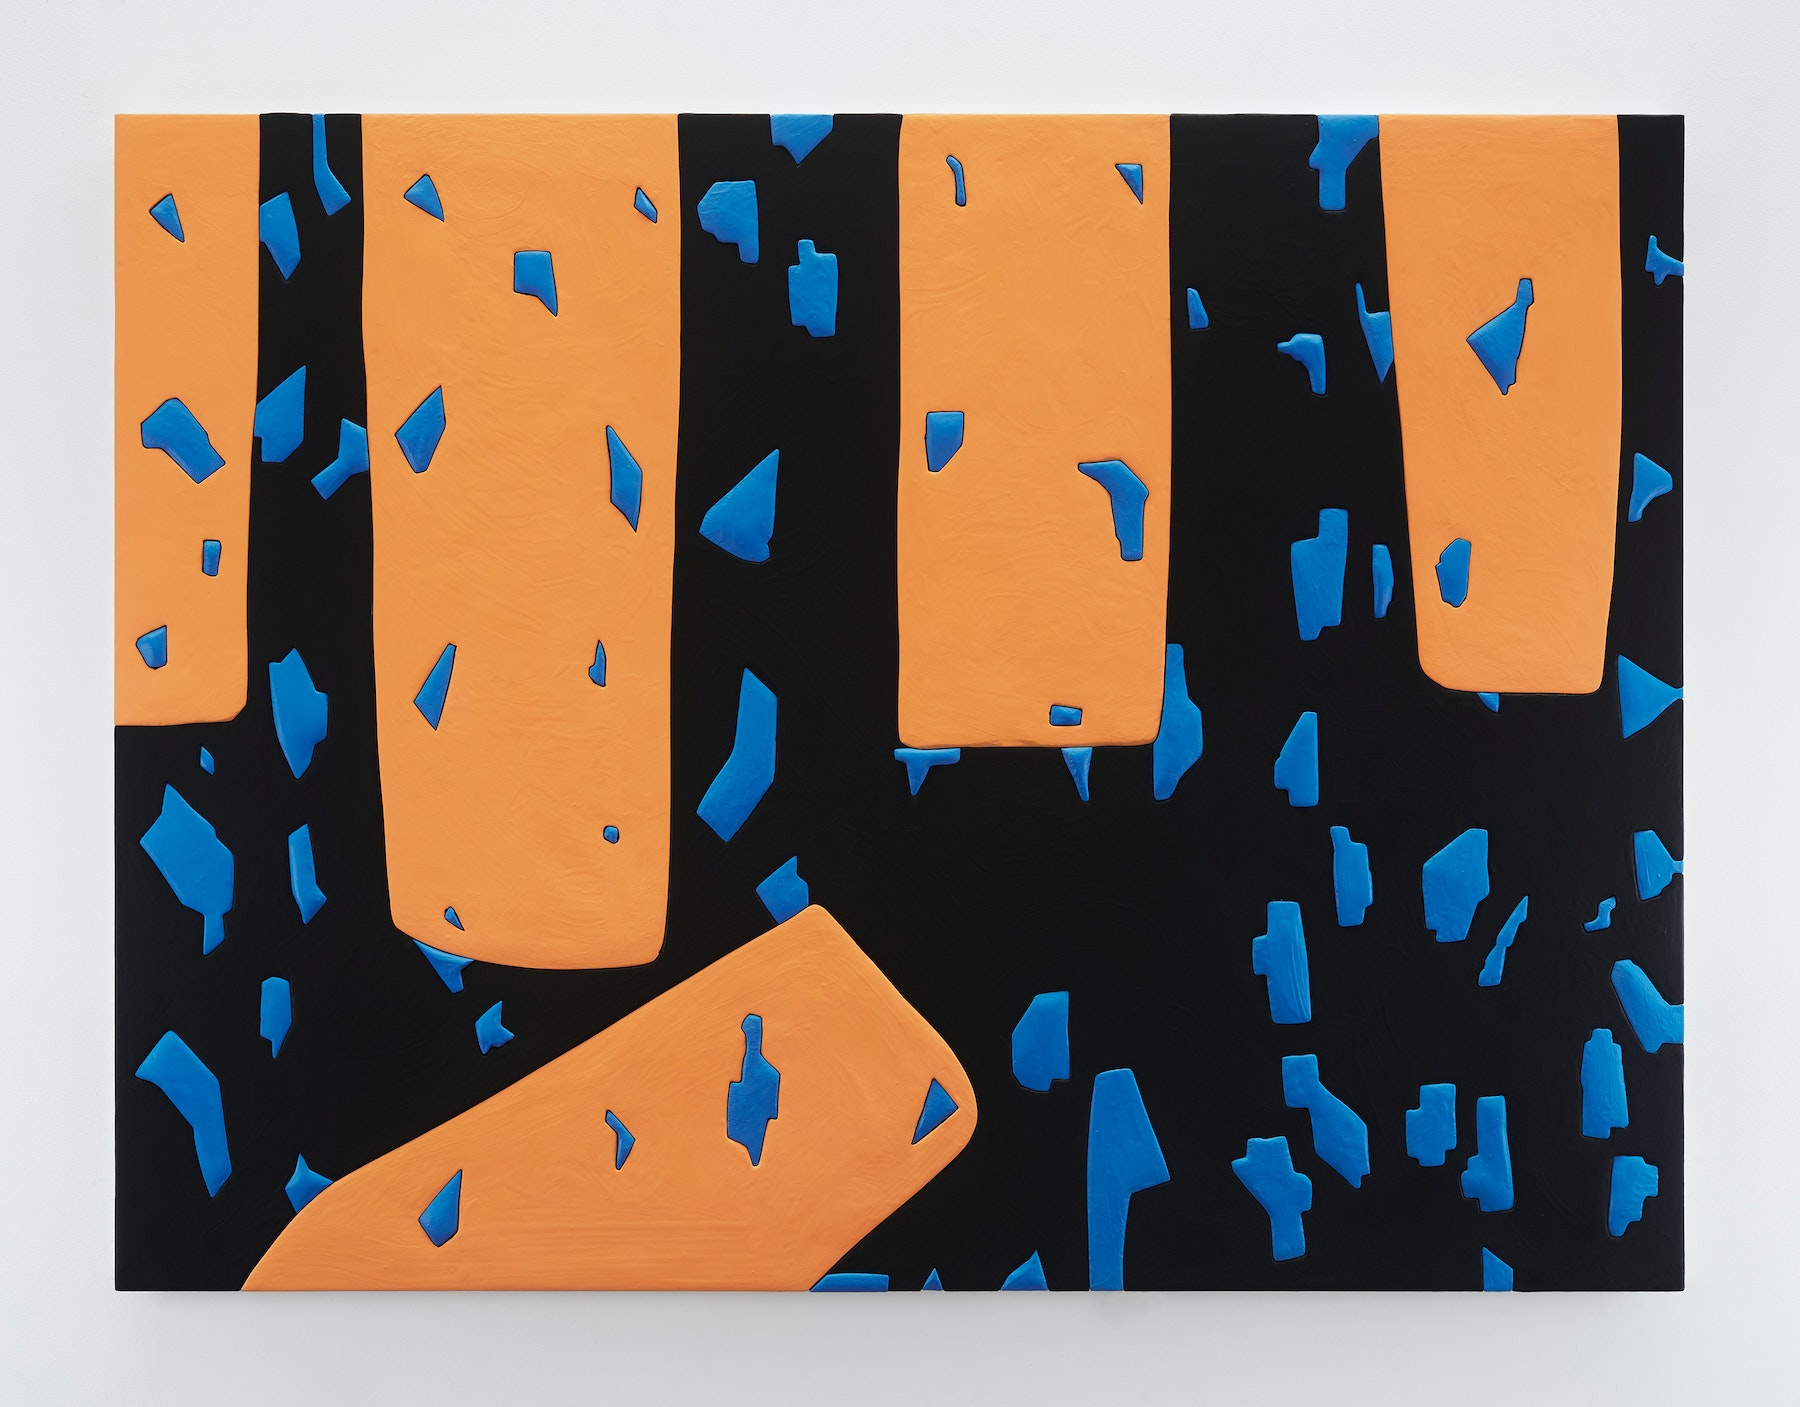 "Sadie Benning ""Untitled 8,"" 2019 Wood, aqua resin, casein, and acrylic gouache 53 x 71"" [HxW] (134.62 x 180.34 cm) Inventory #BEN862 Courtesy of the artist and Vielmetter Los Angeles Photocredit: Chris Austin"